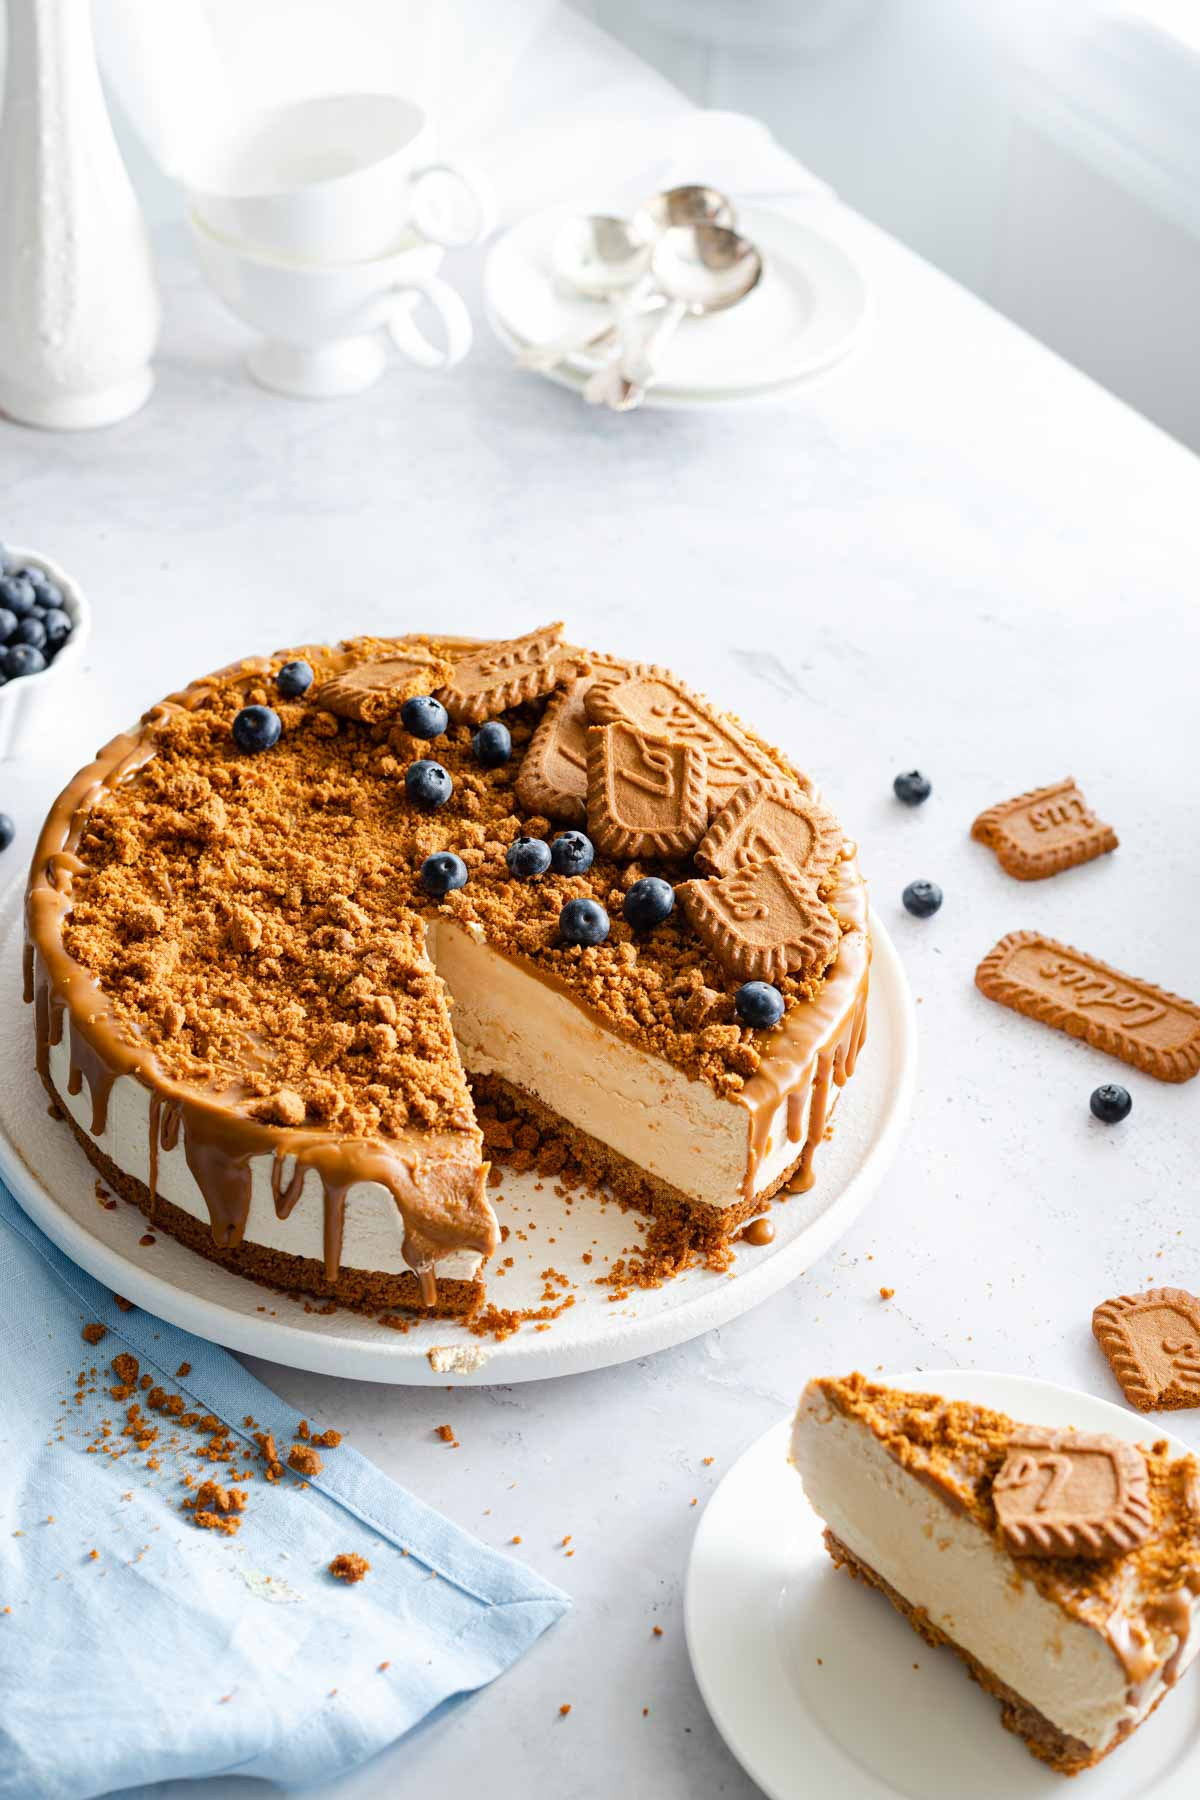 A biscoff cheesecake on a plate, garnished with biscoff cookies and blueberries